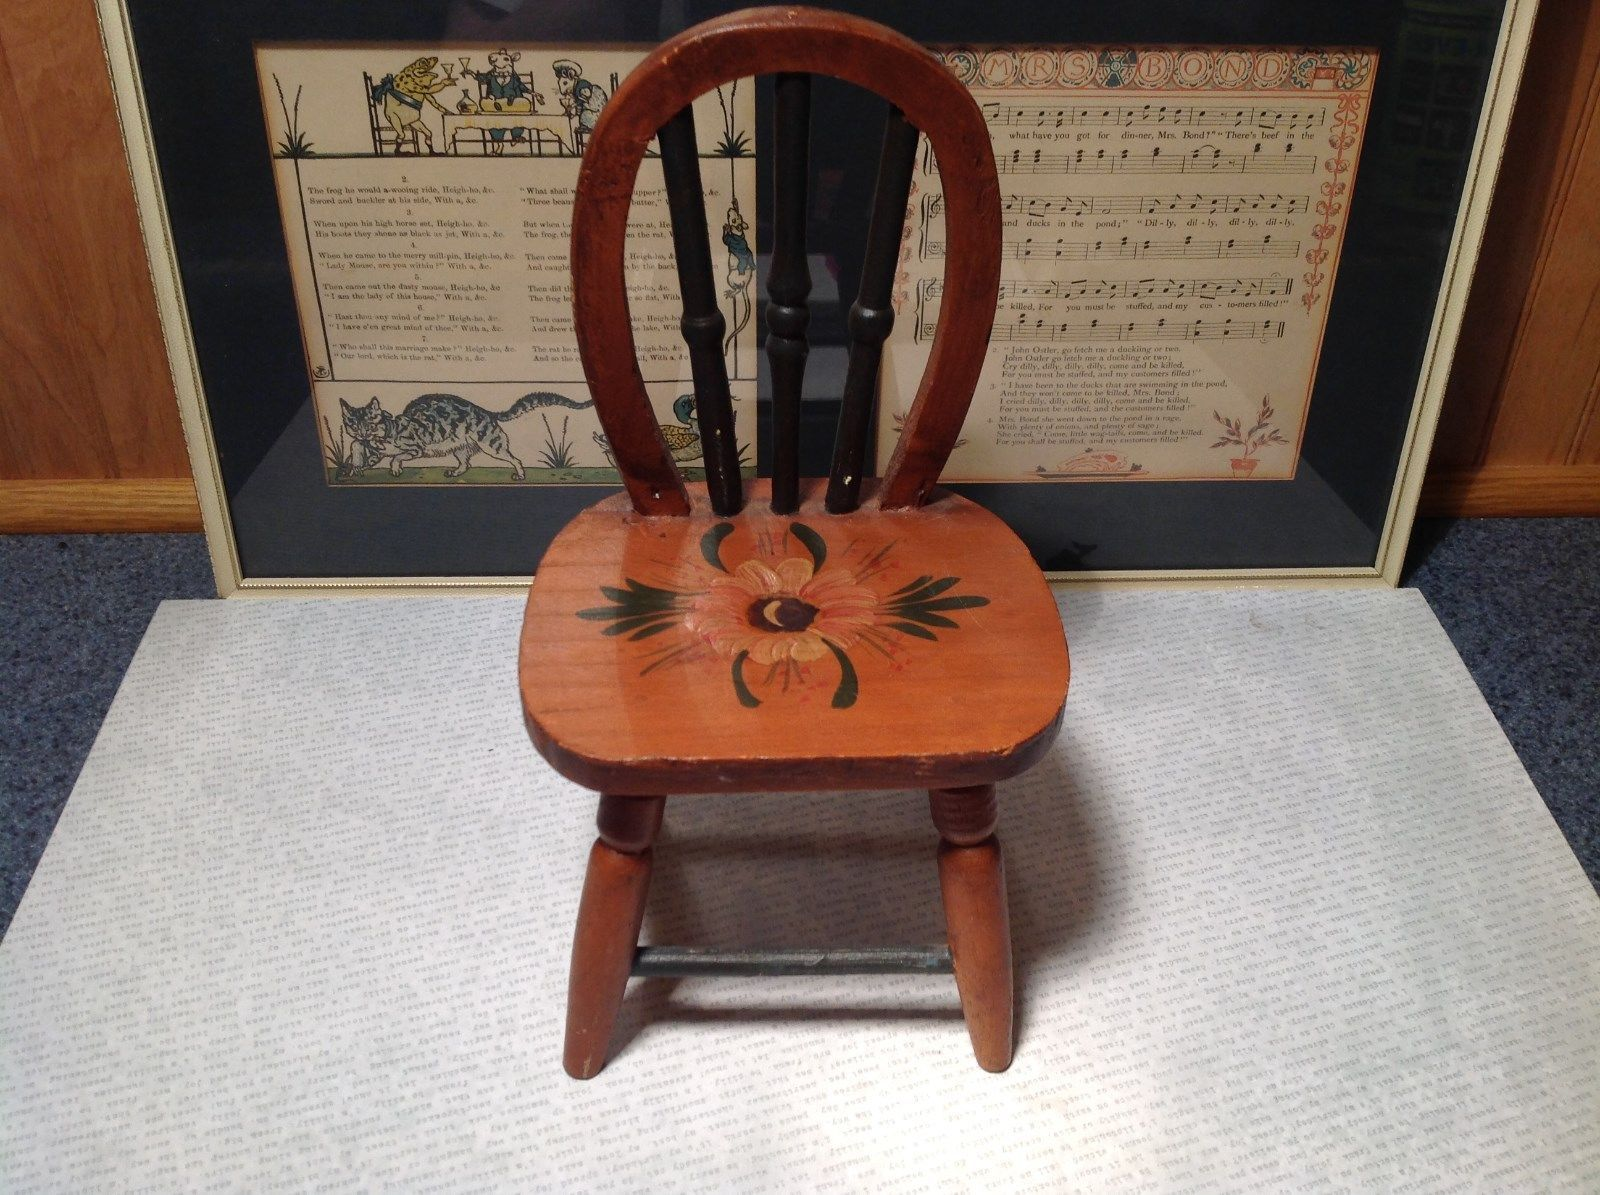 Handmade Small Decorative Wooden Chair Flower on Seat